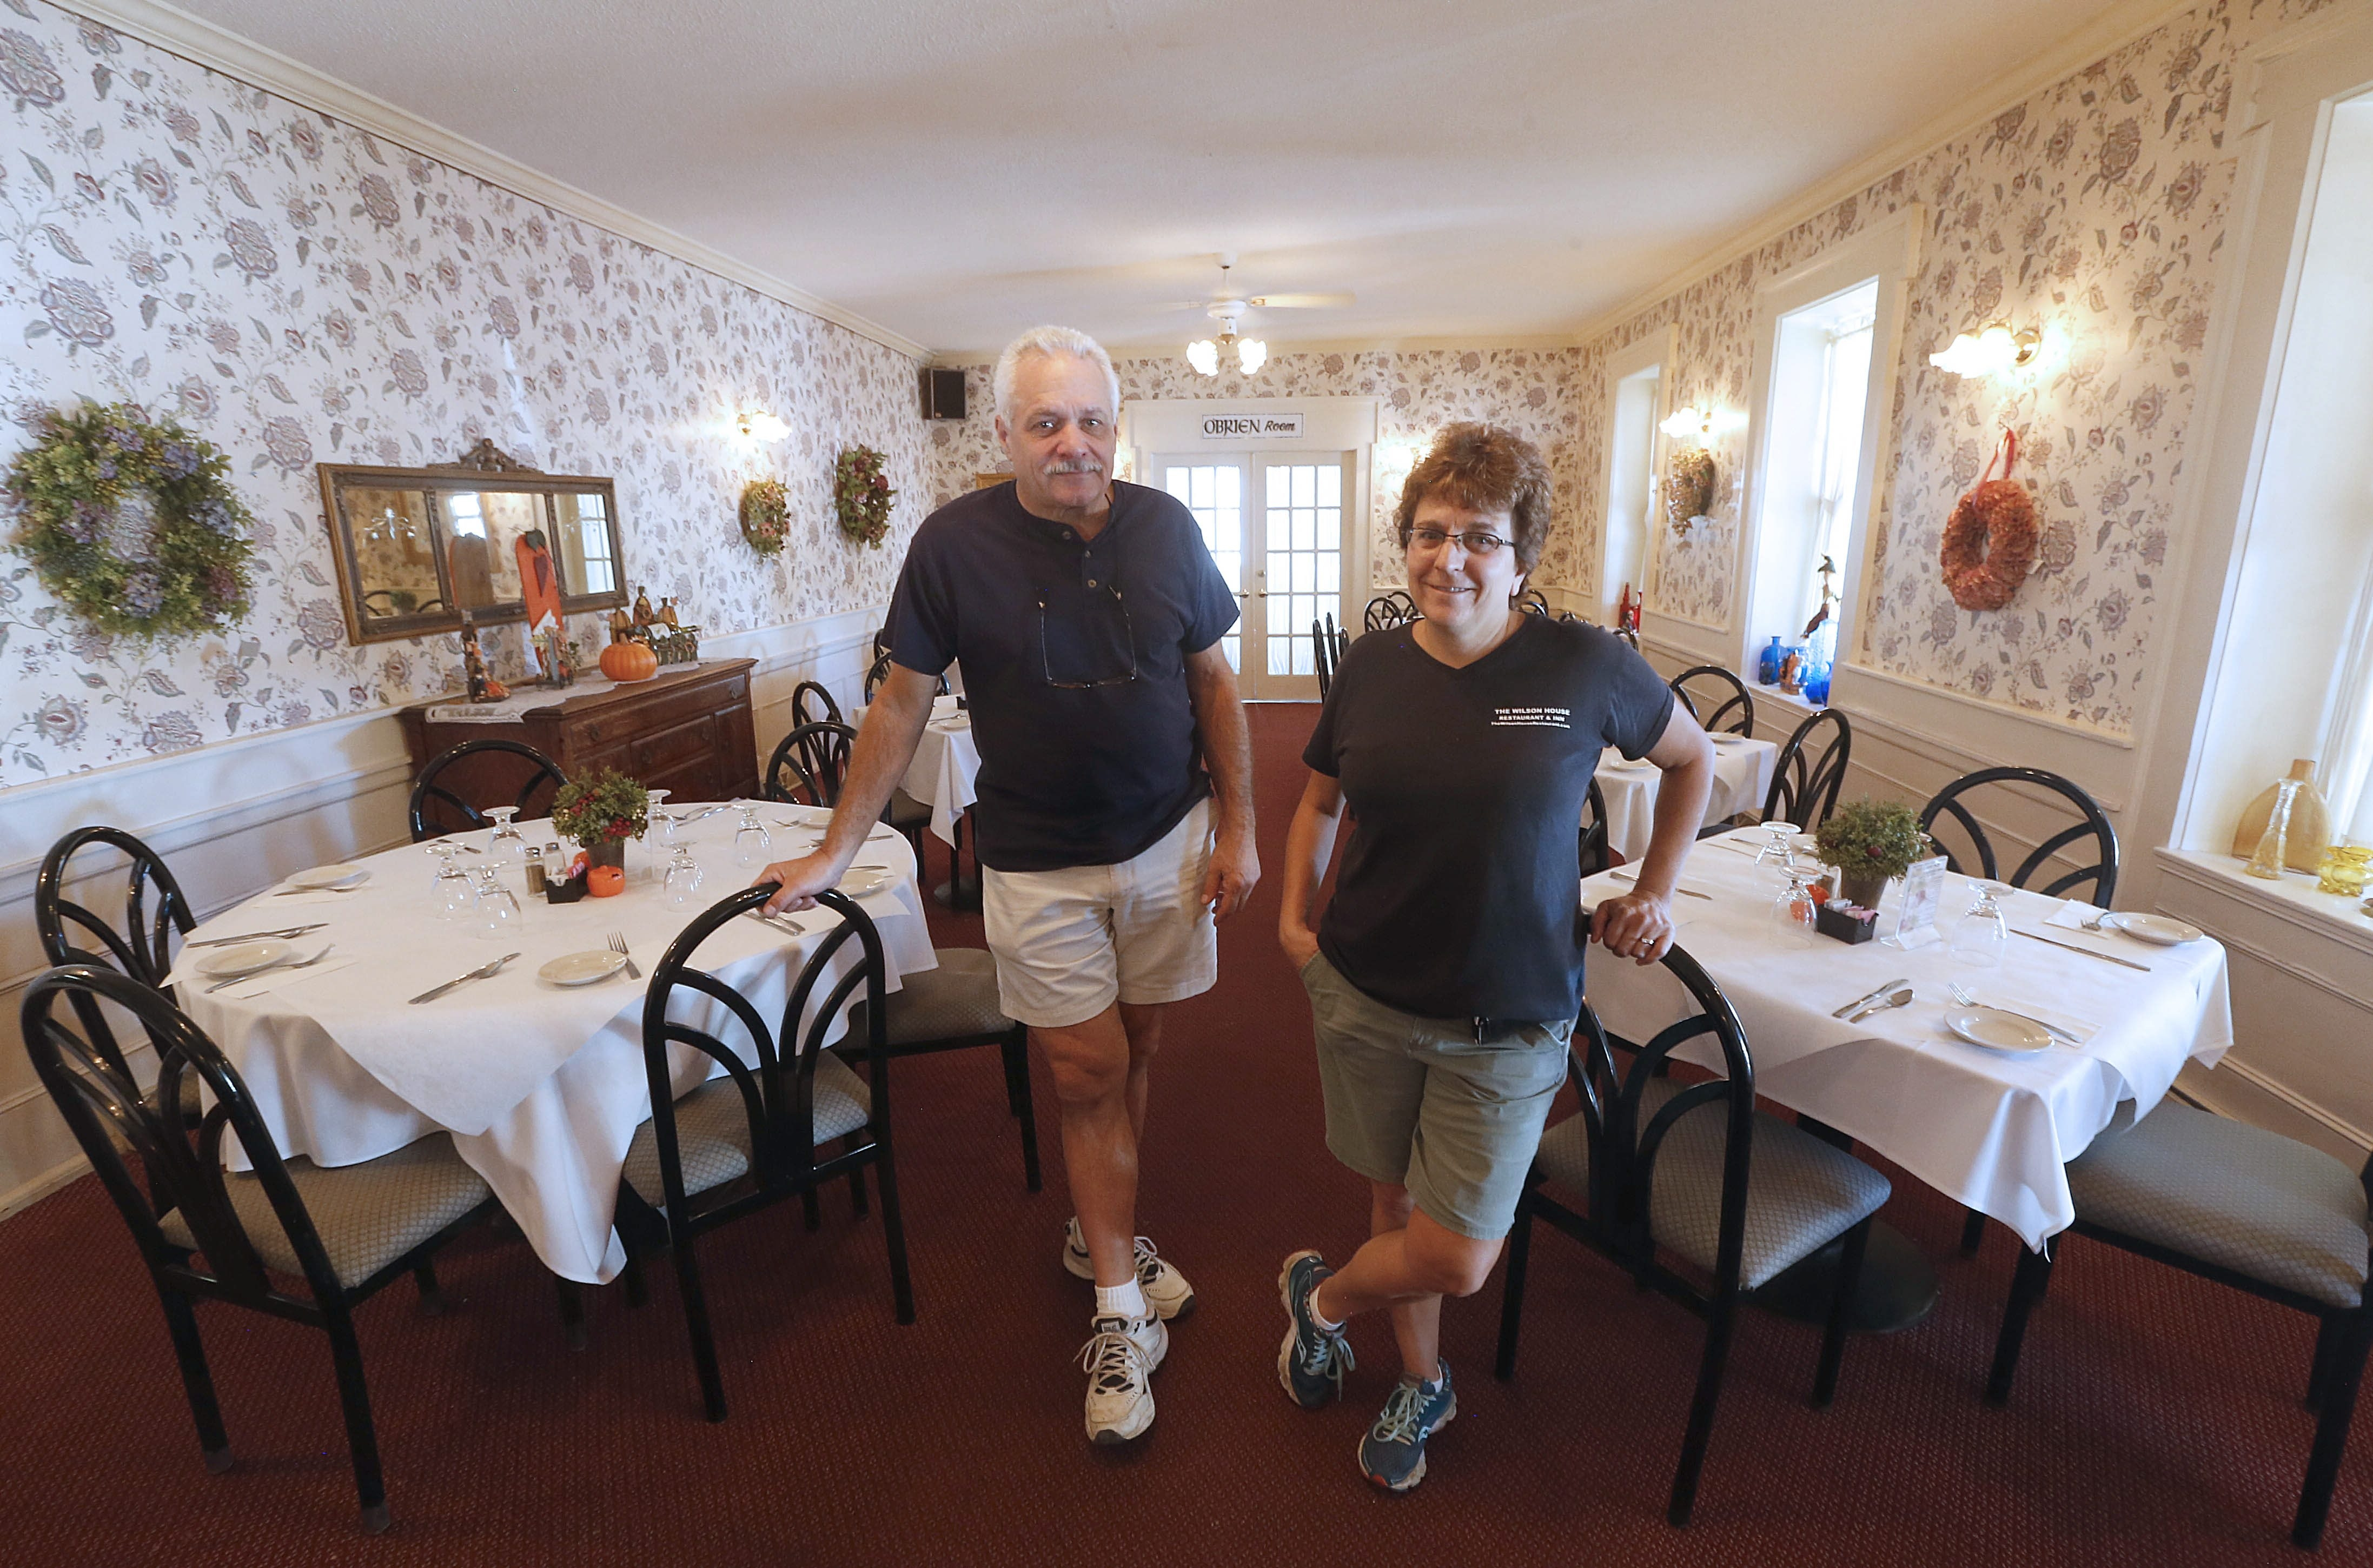 John Cracchiola and Caren Ashkar have operated the Wilson House Restaurant and Inn for a decade, but a planned sale of the building and changing business climate have led them to decide to close the restaurant.